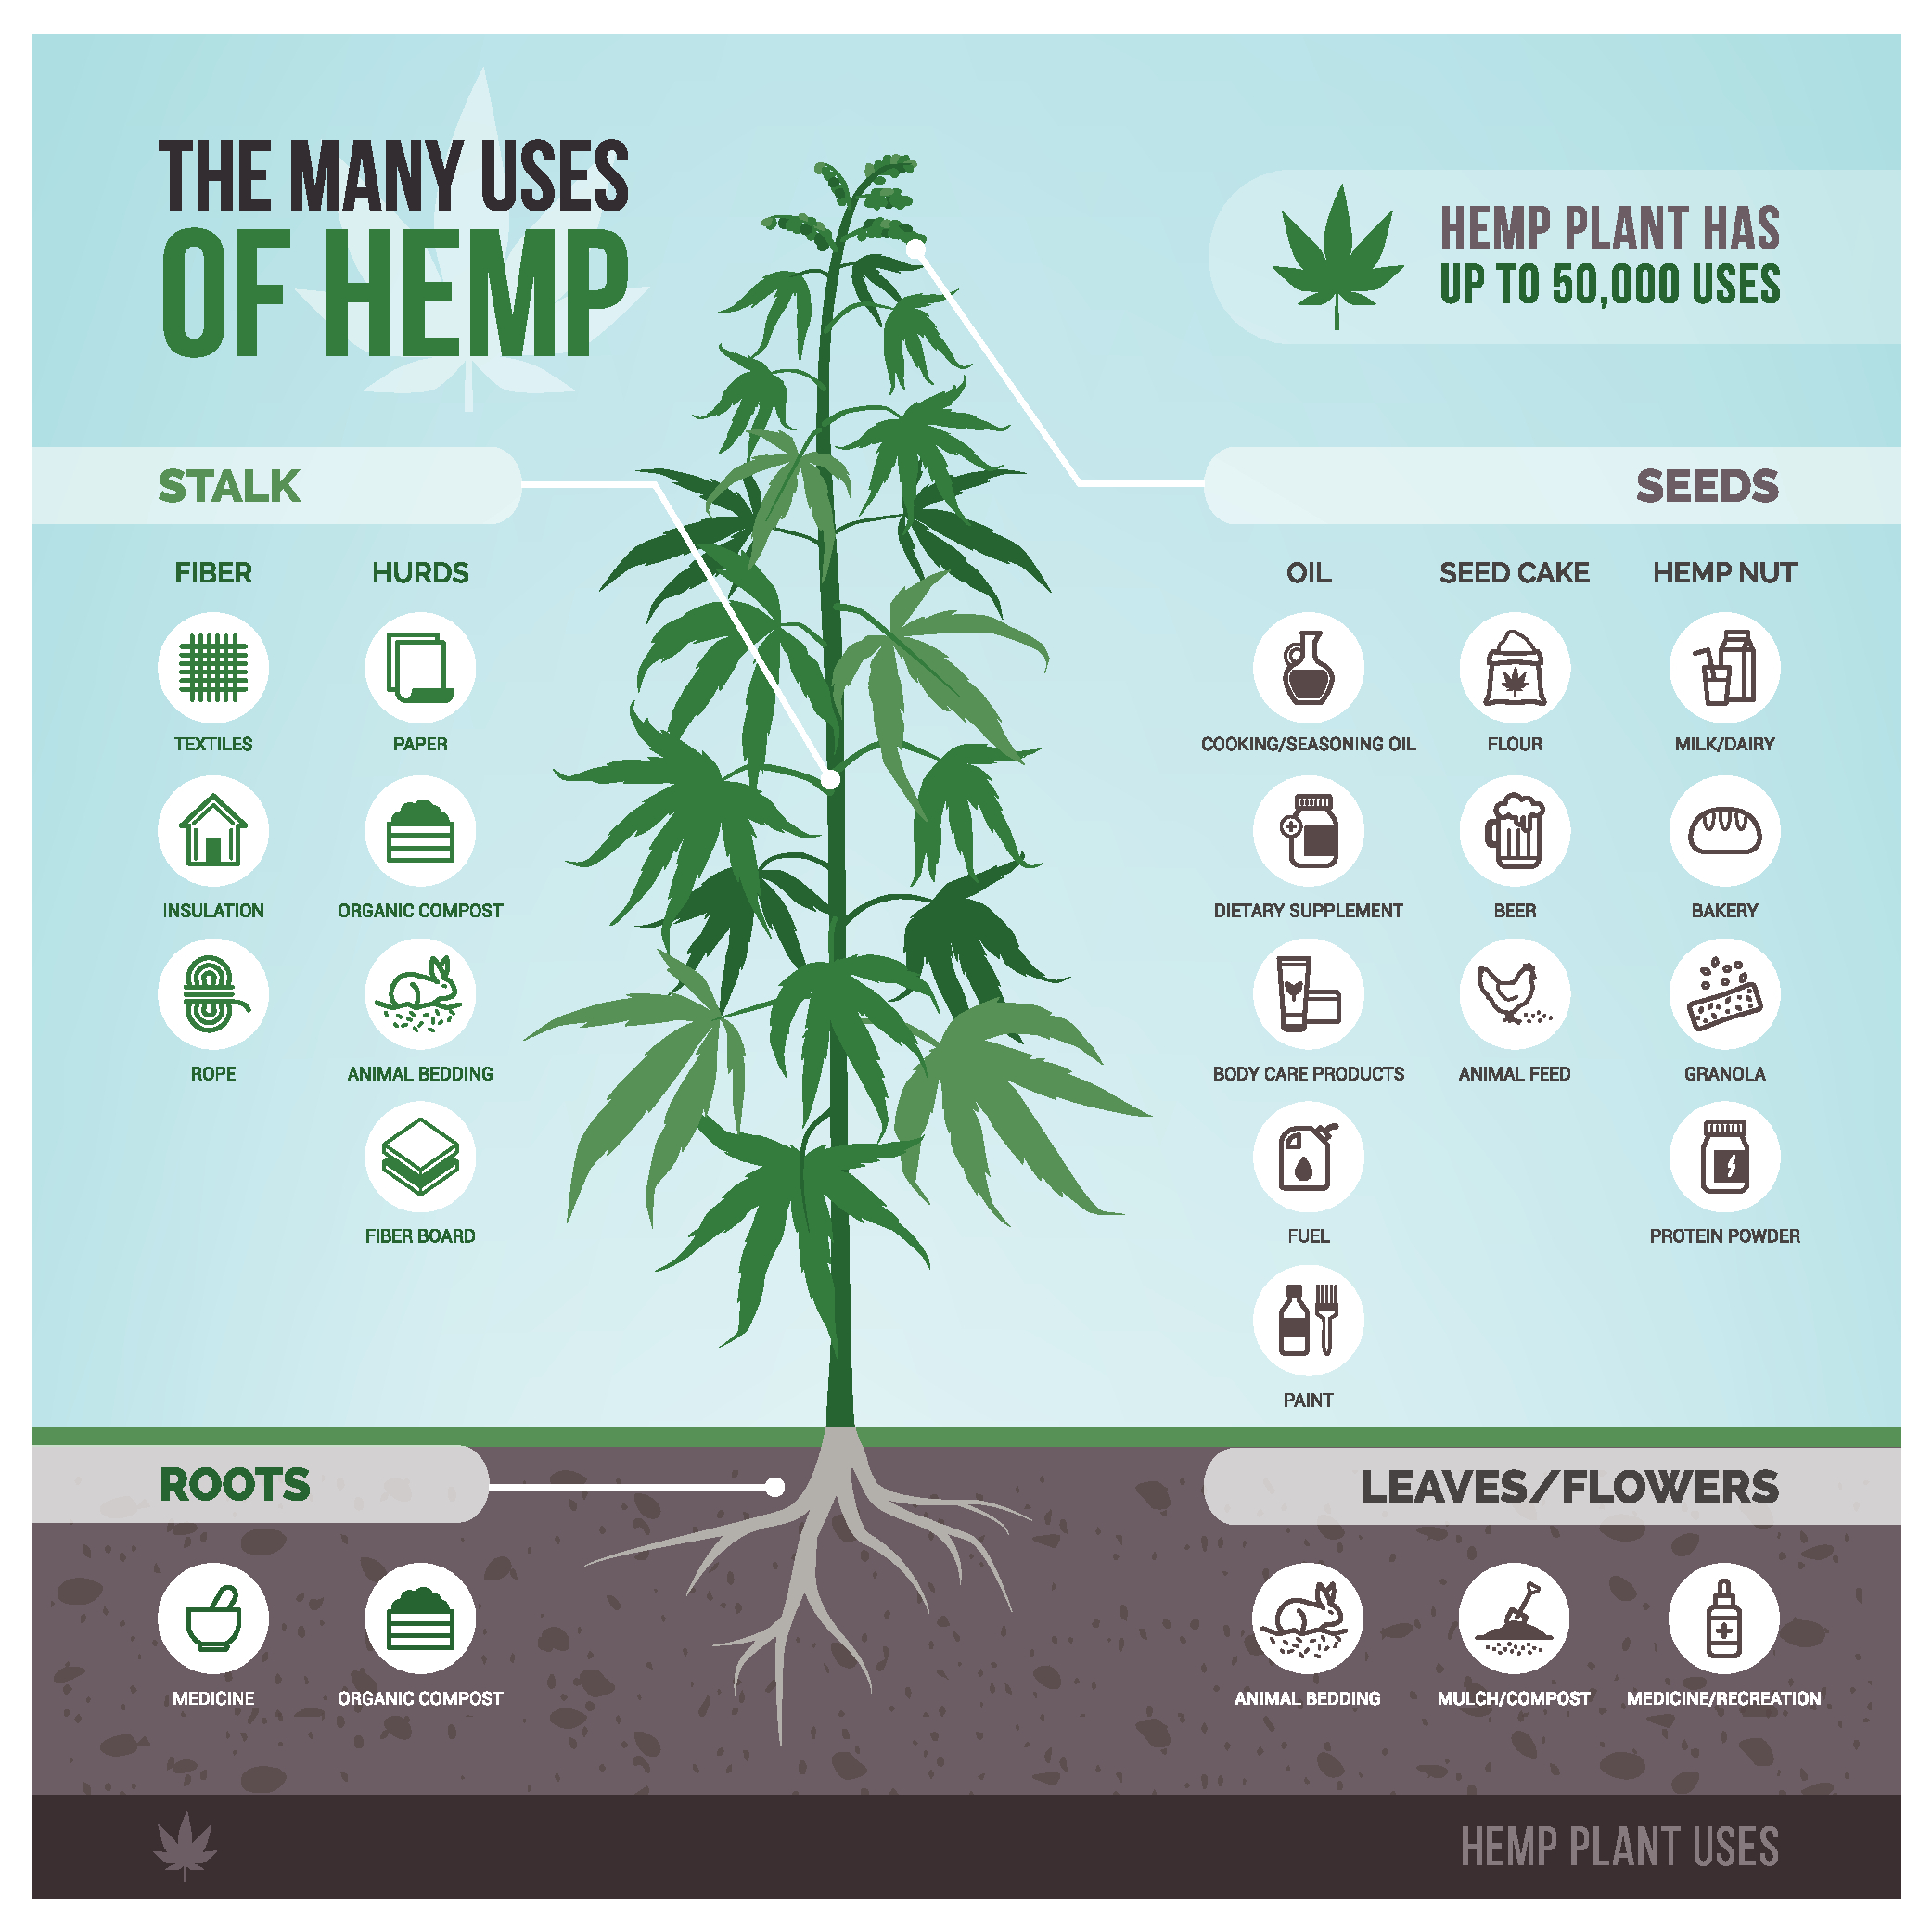 The Many Uses of Hemp infographic. Image via Medium.